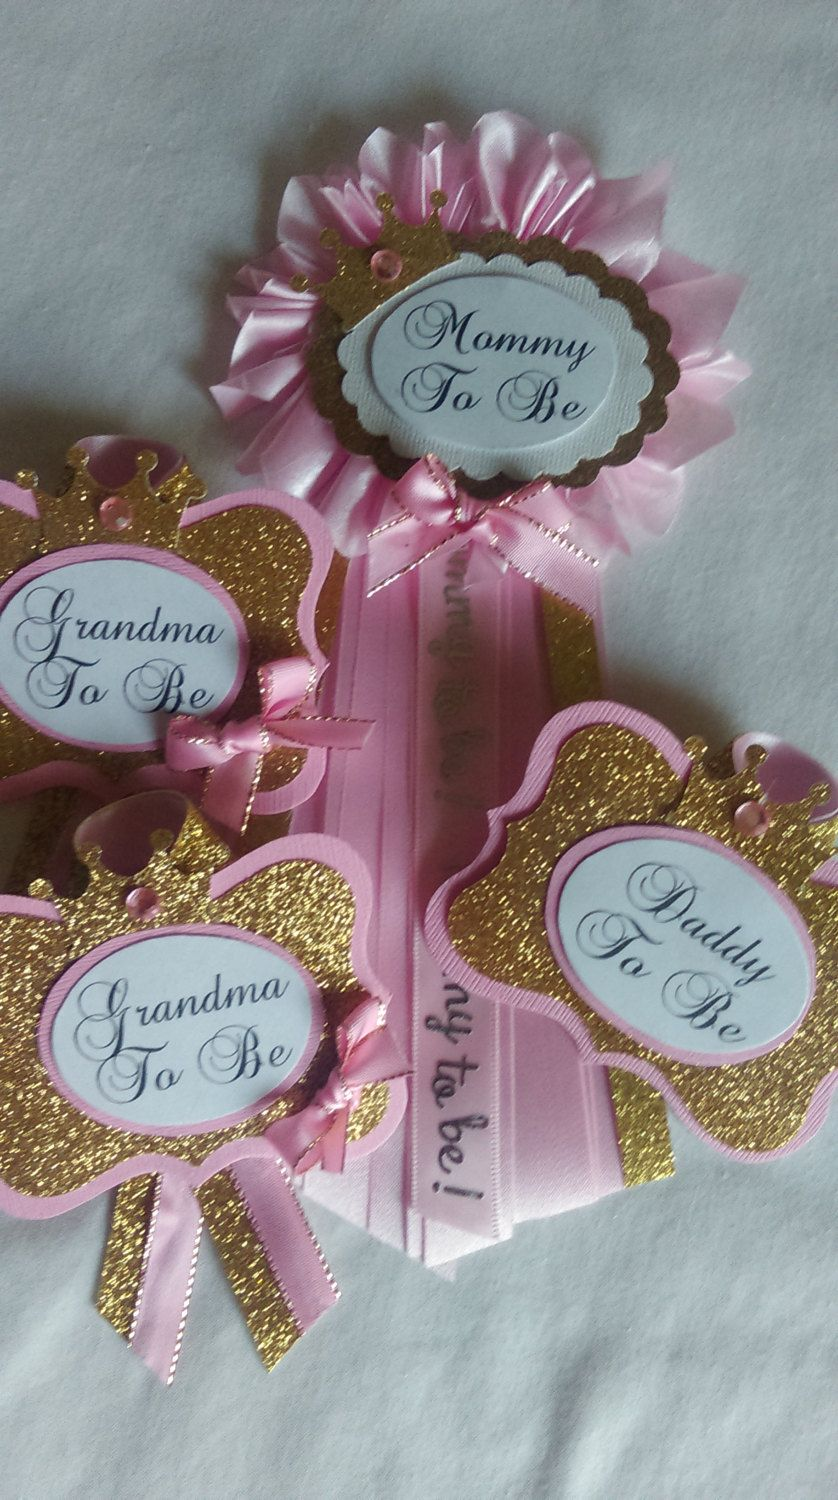 Mommy To Be Pin And Choose Guest Pins Pink Gold Princess